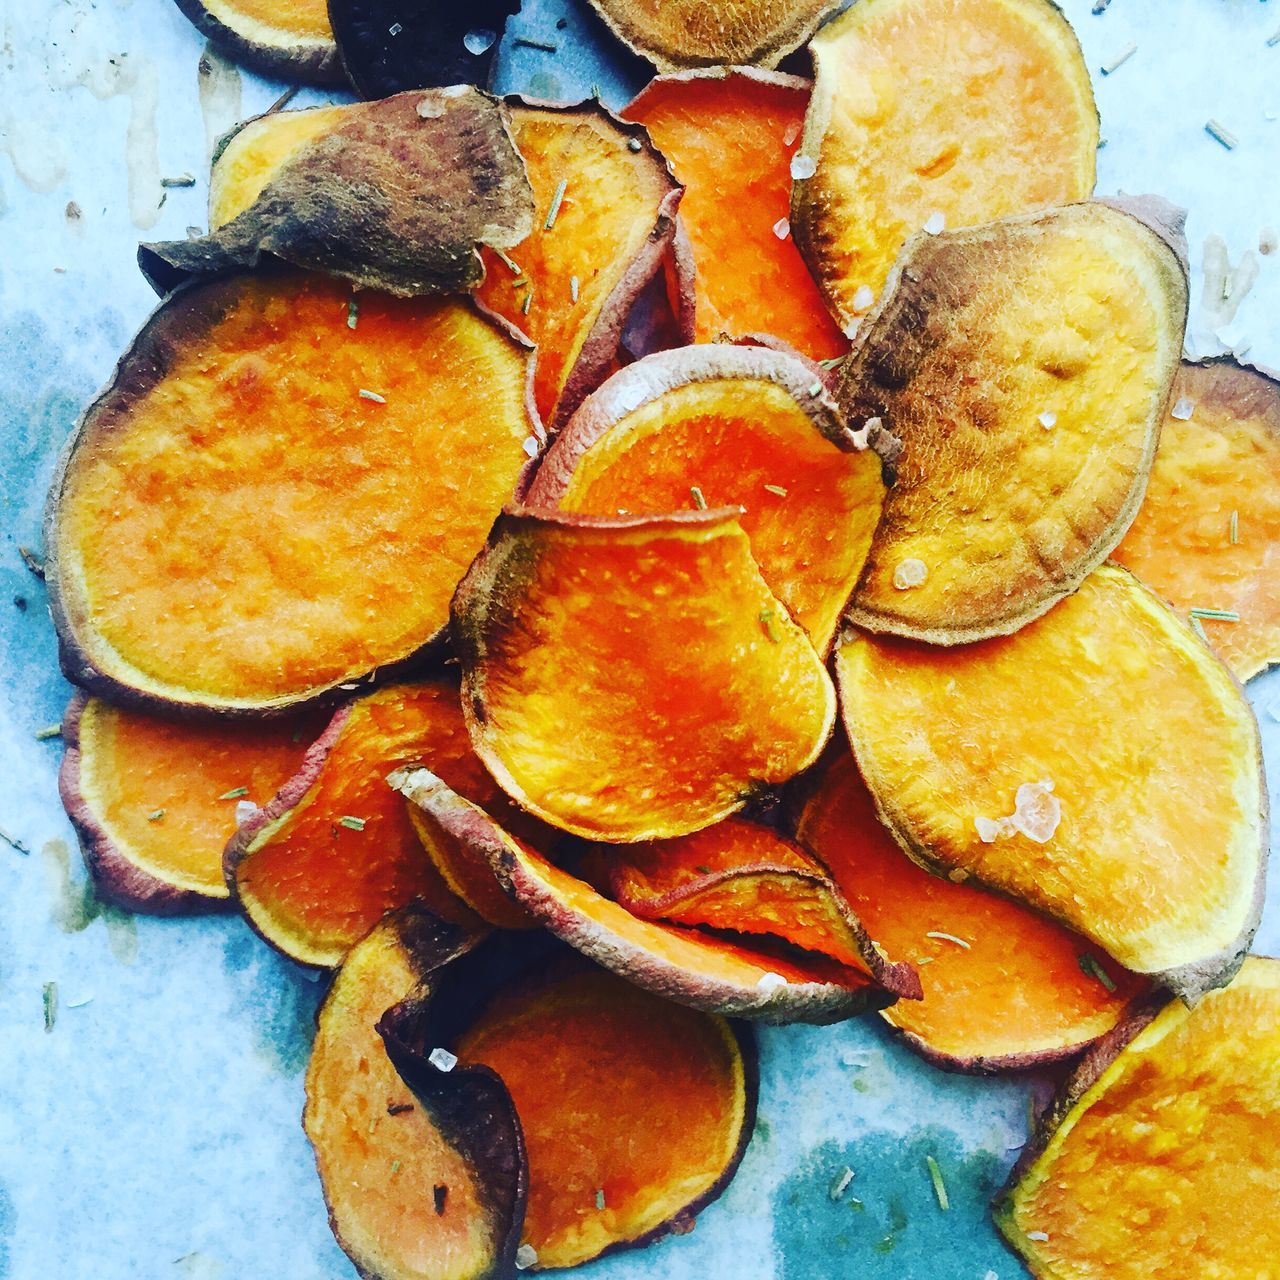 healthy sweet potatoes snack Food Food And Drink Freshness Healthy Eating Party Food Snack Healthy Sweet Potato Sweet Potato Fries Sweet Potatoes